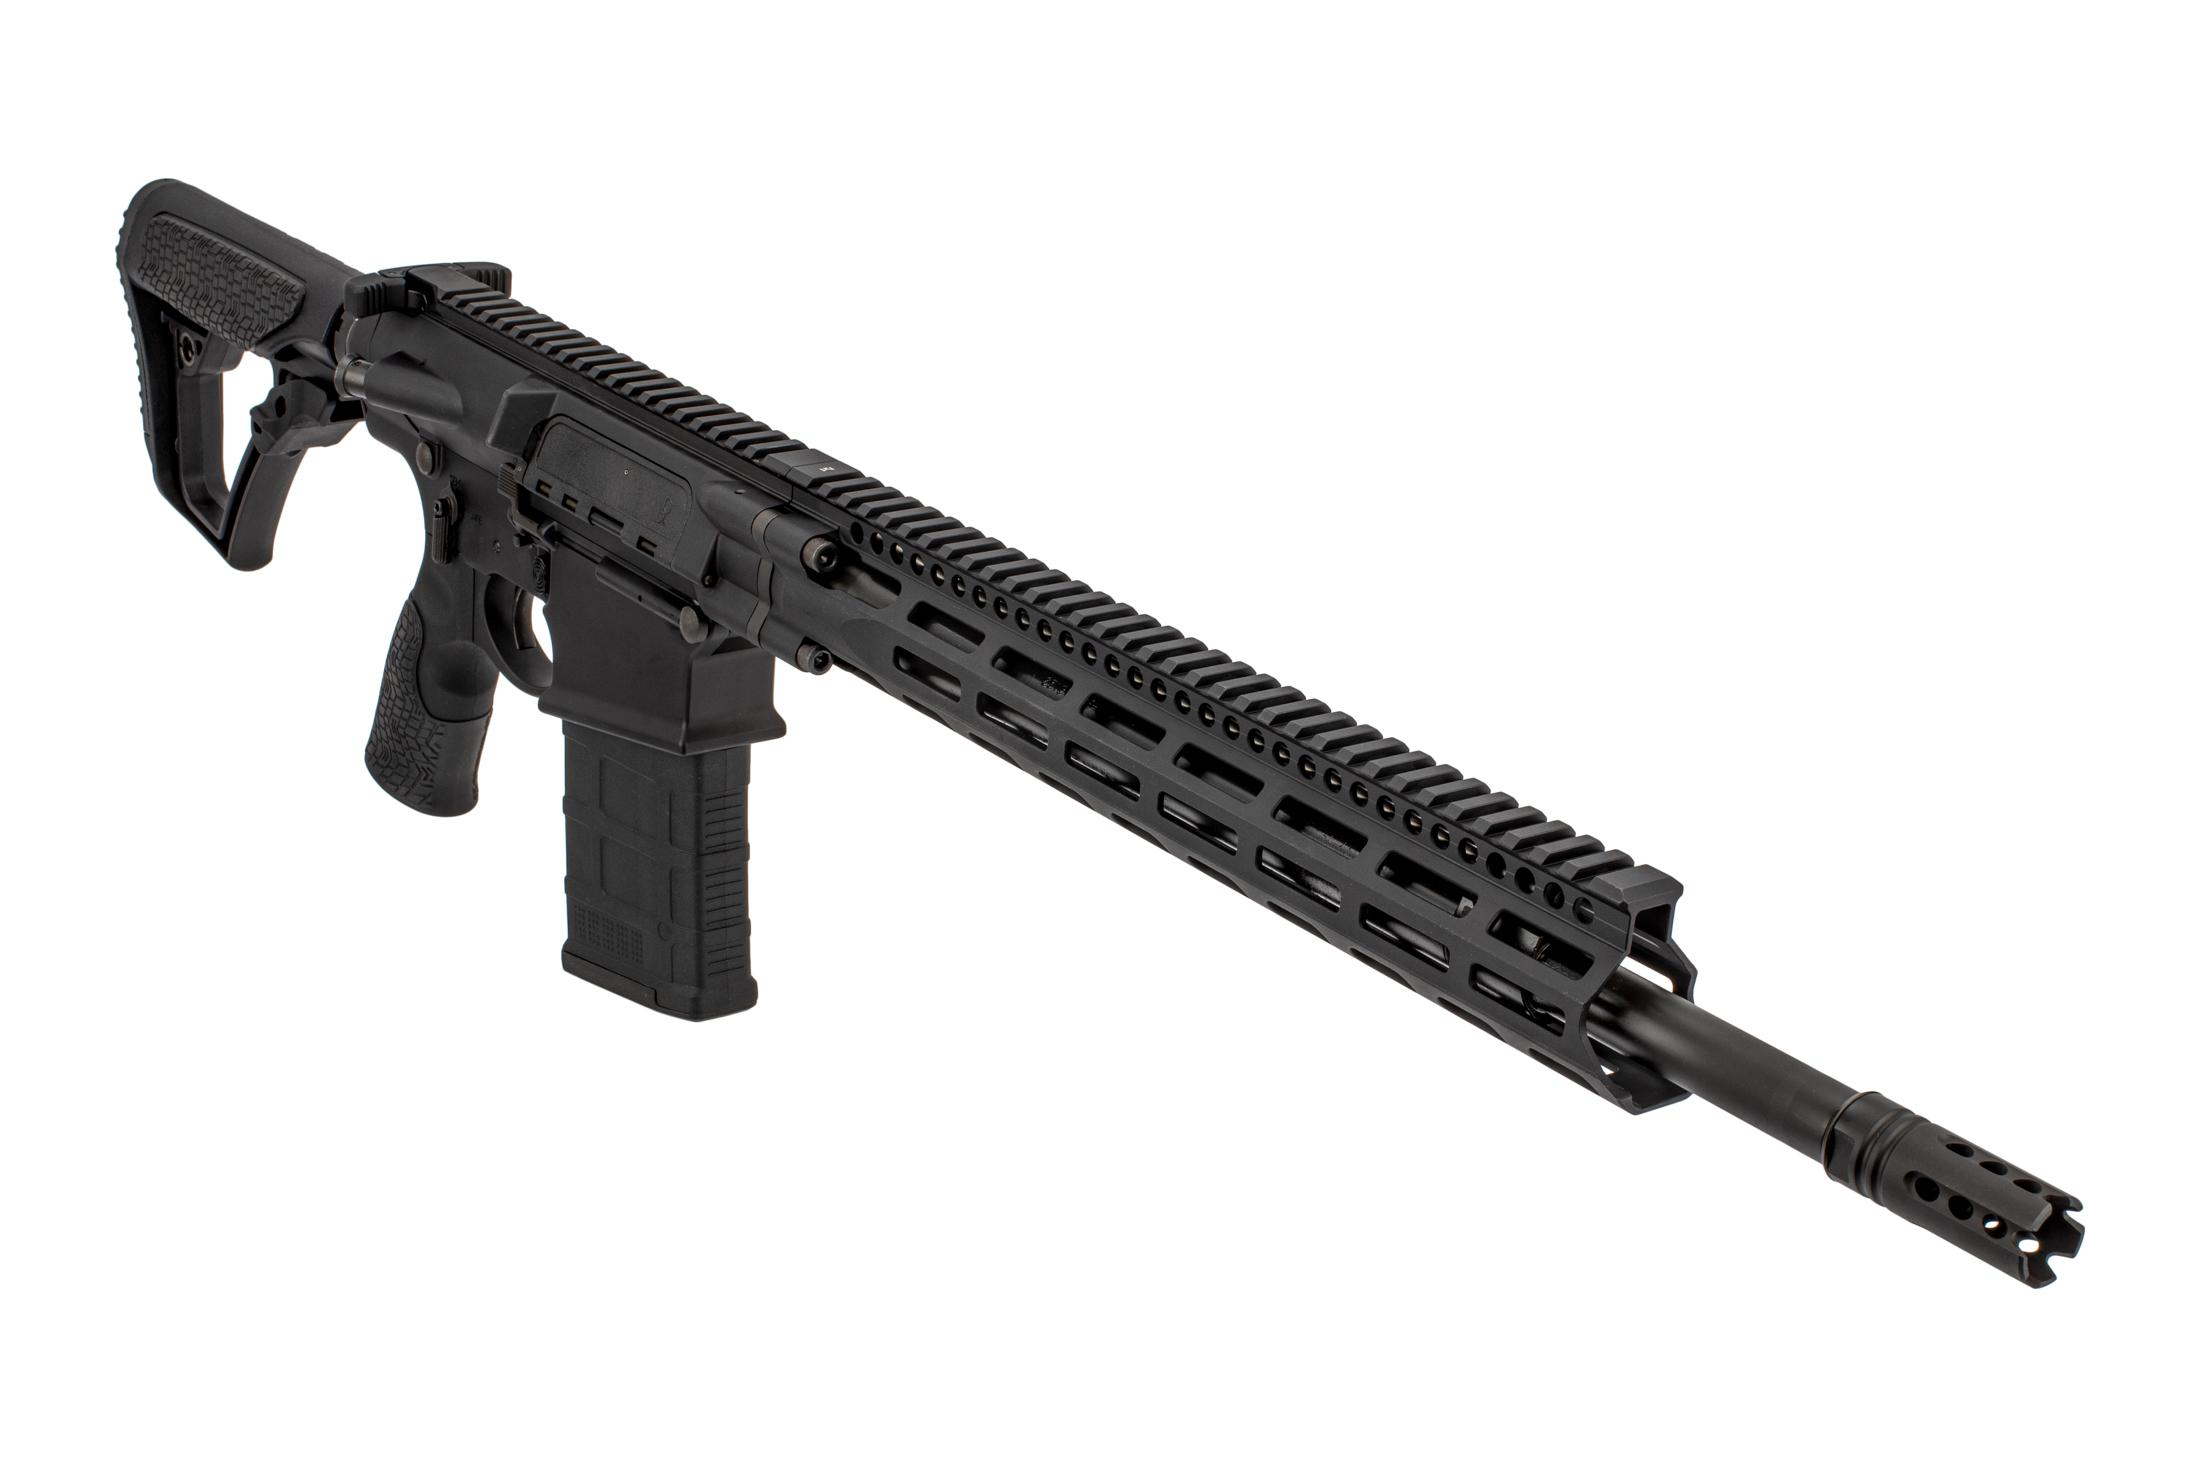 Daniel Defense DD5V4 6.5 Creedmoor rifle features an 18in cold hammer forged barrel and 15in M-LOK rail